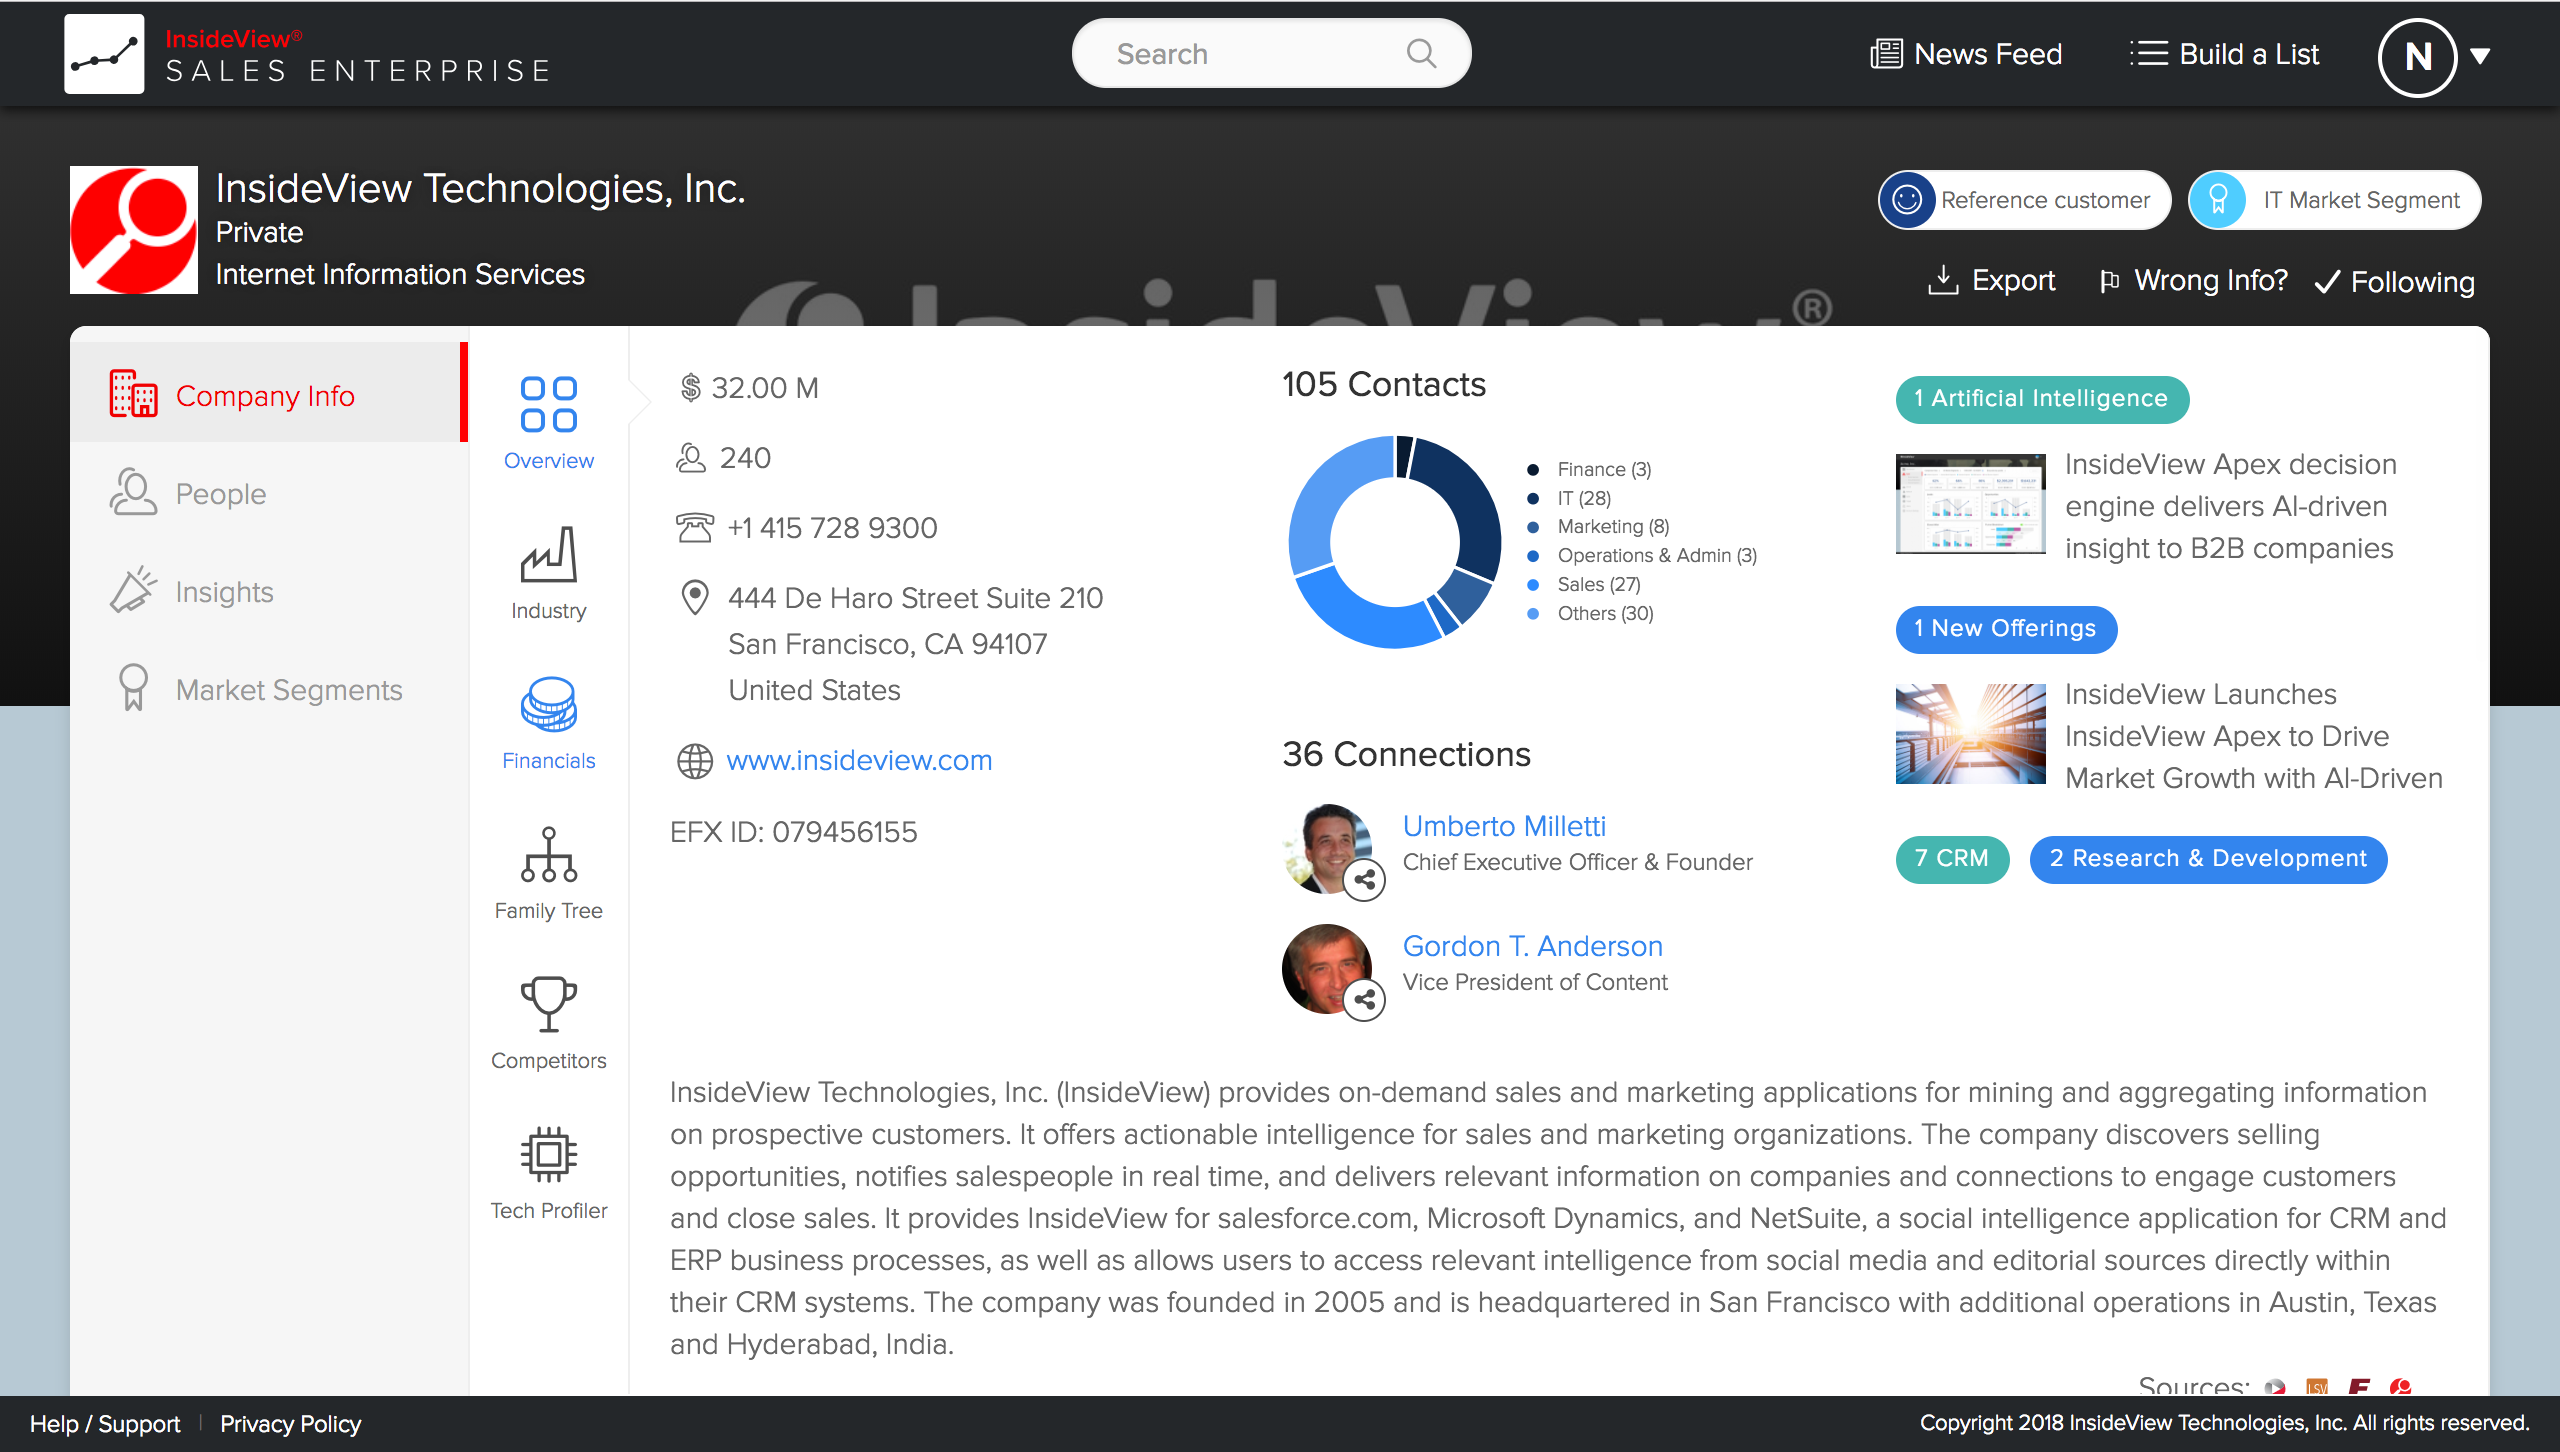 InsideView screenshot: InsideView Company and People Insights